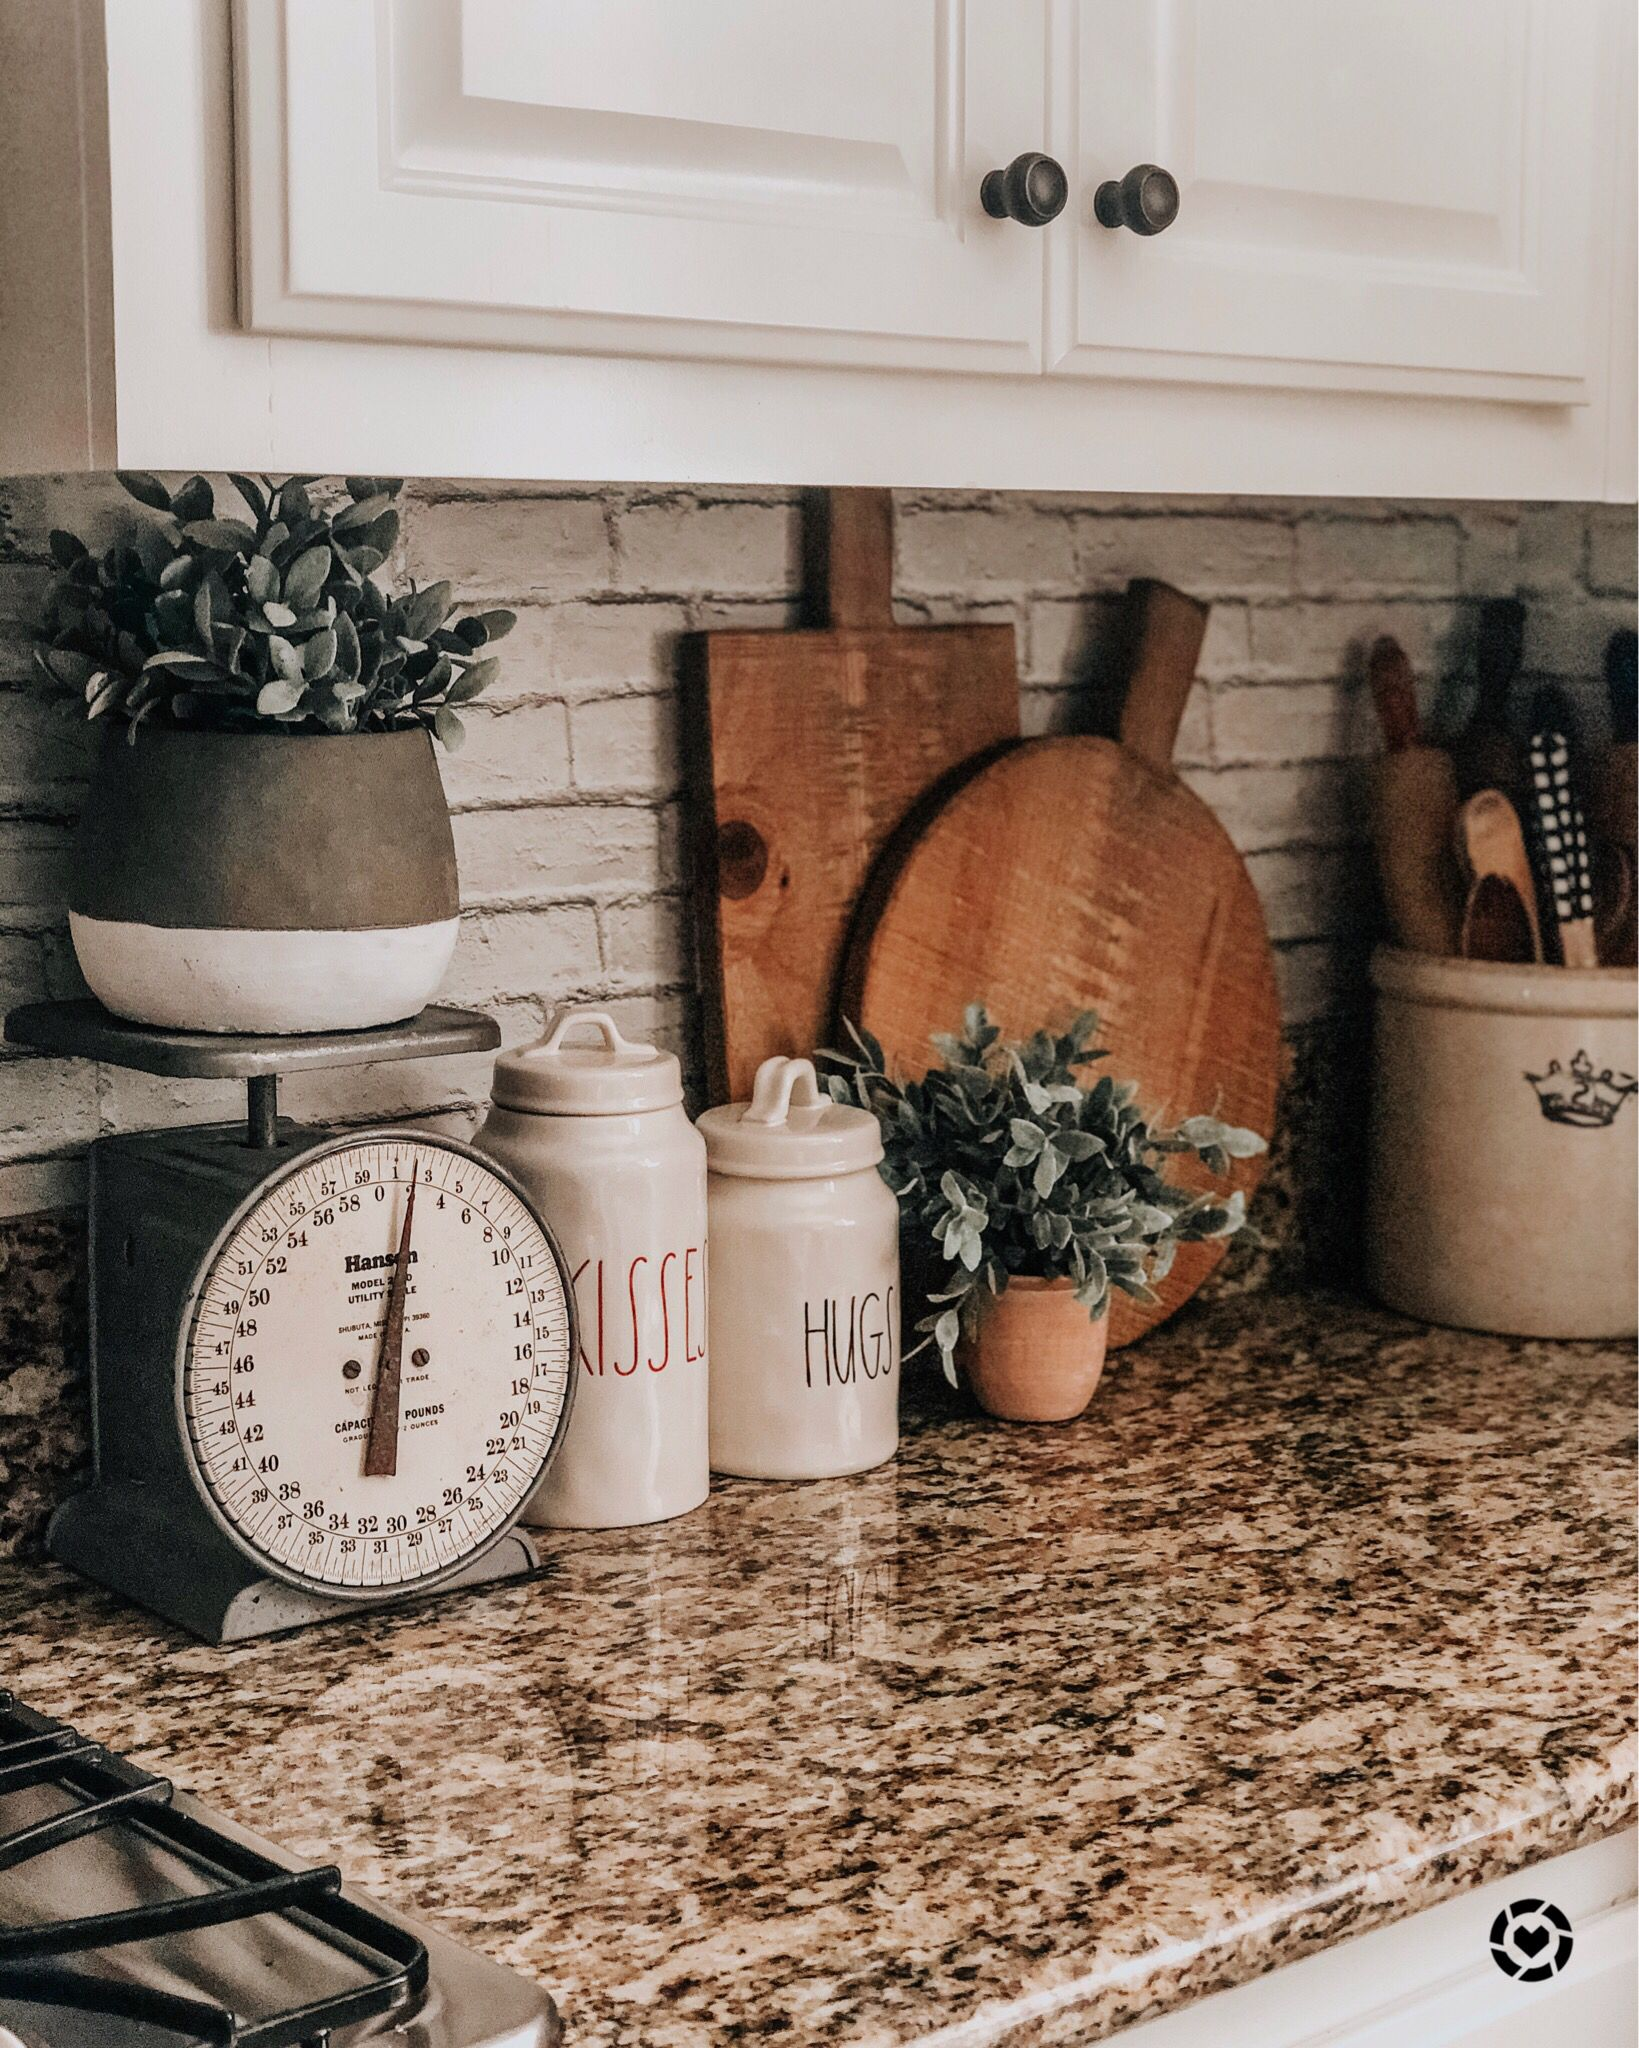 Brick Wallpaper Kitchen Wallpaper Kitchen Wallpaper Country Country Kitchen Decor